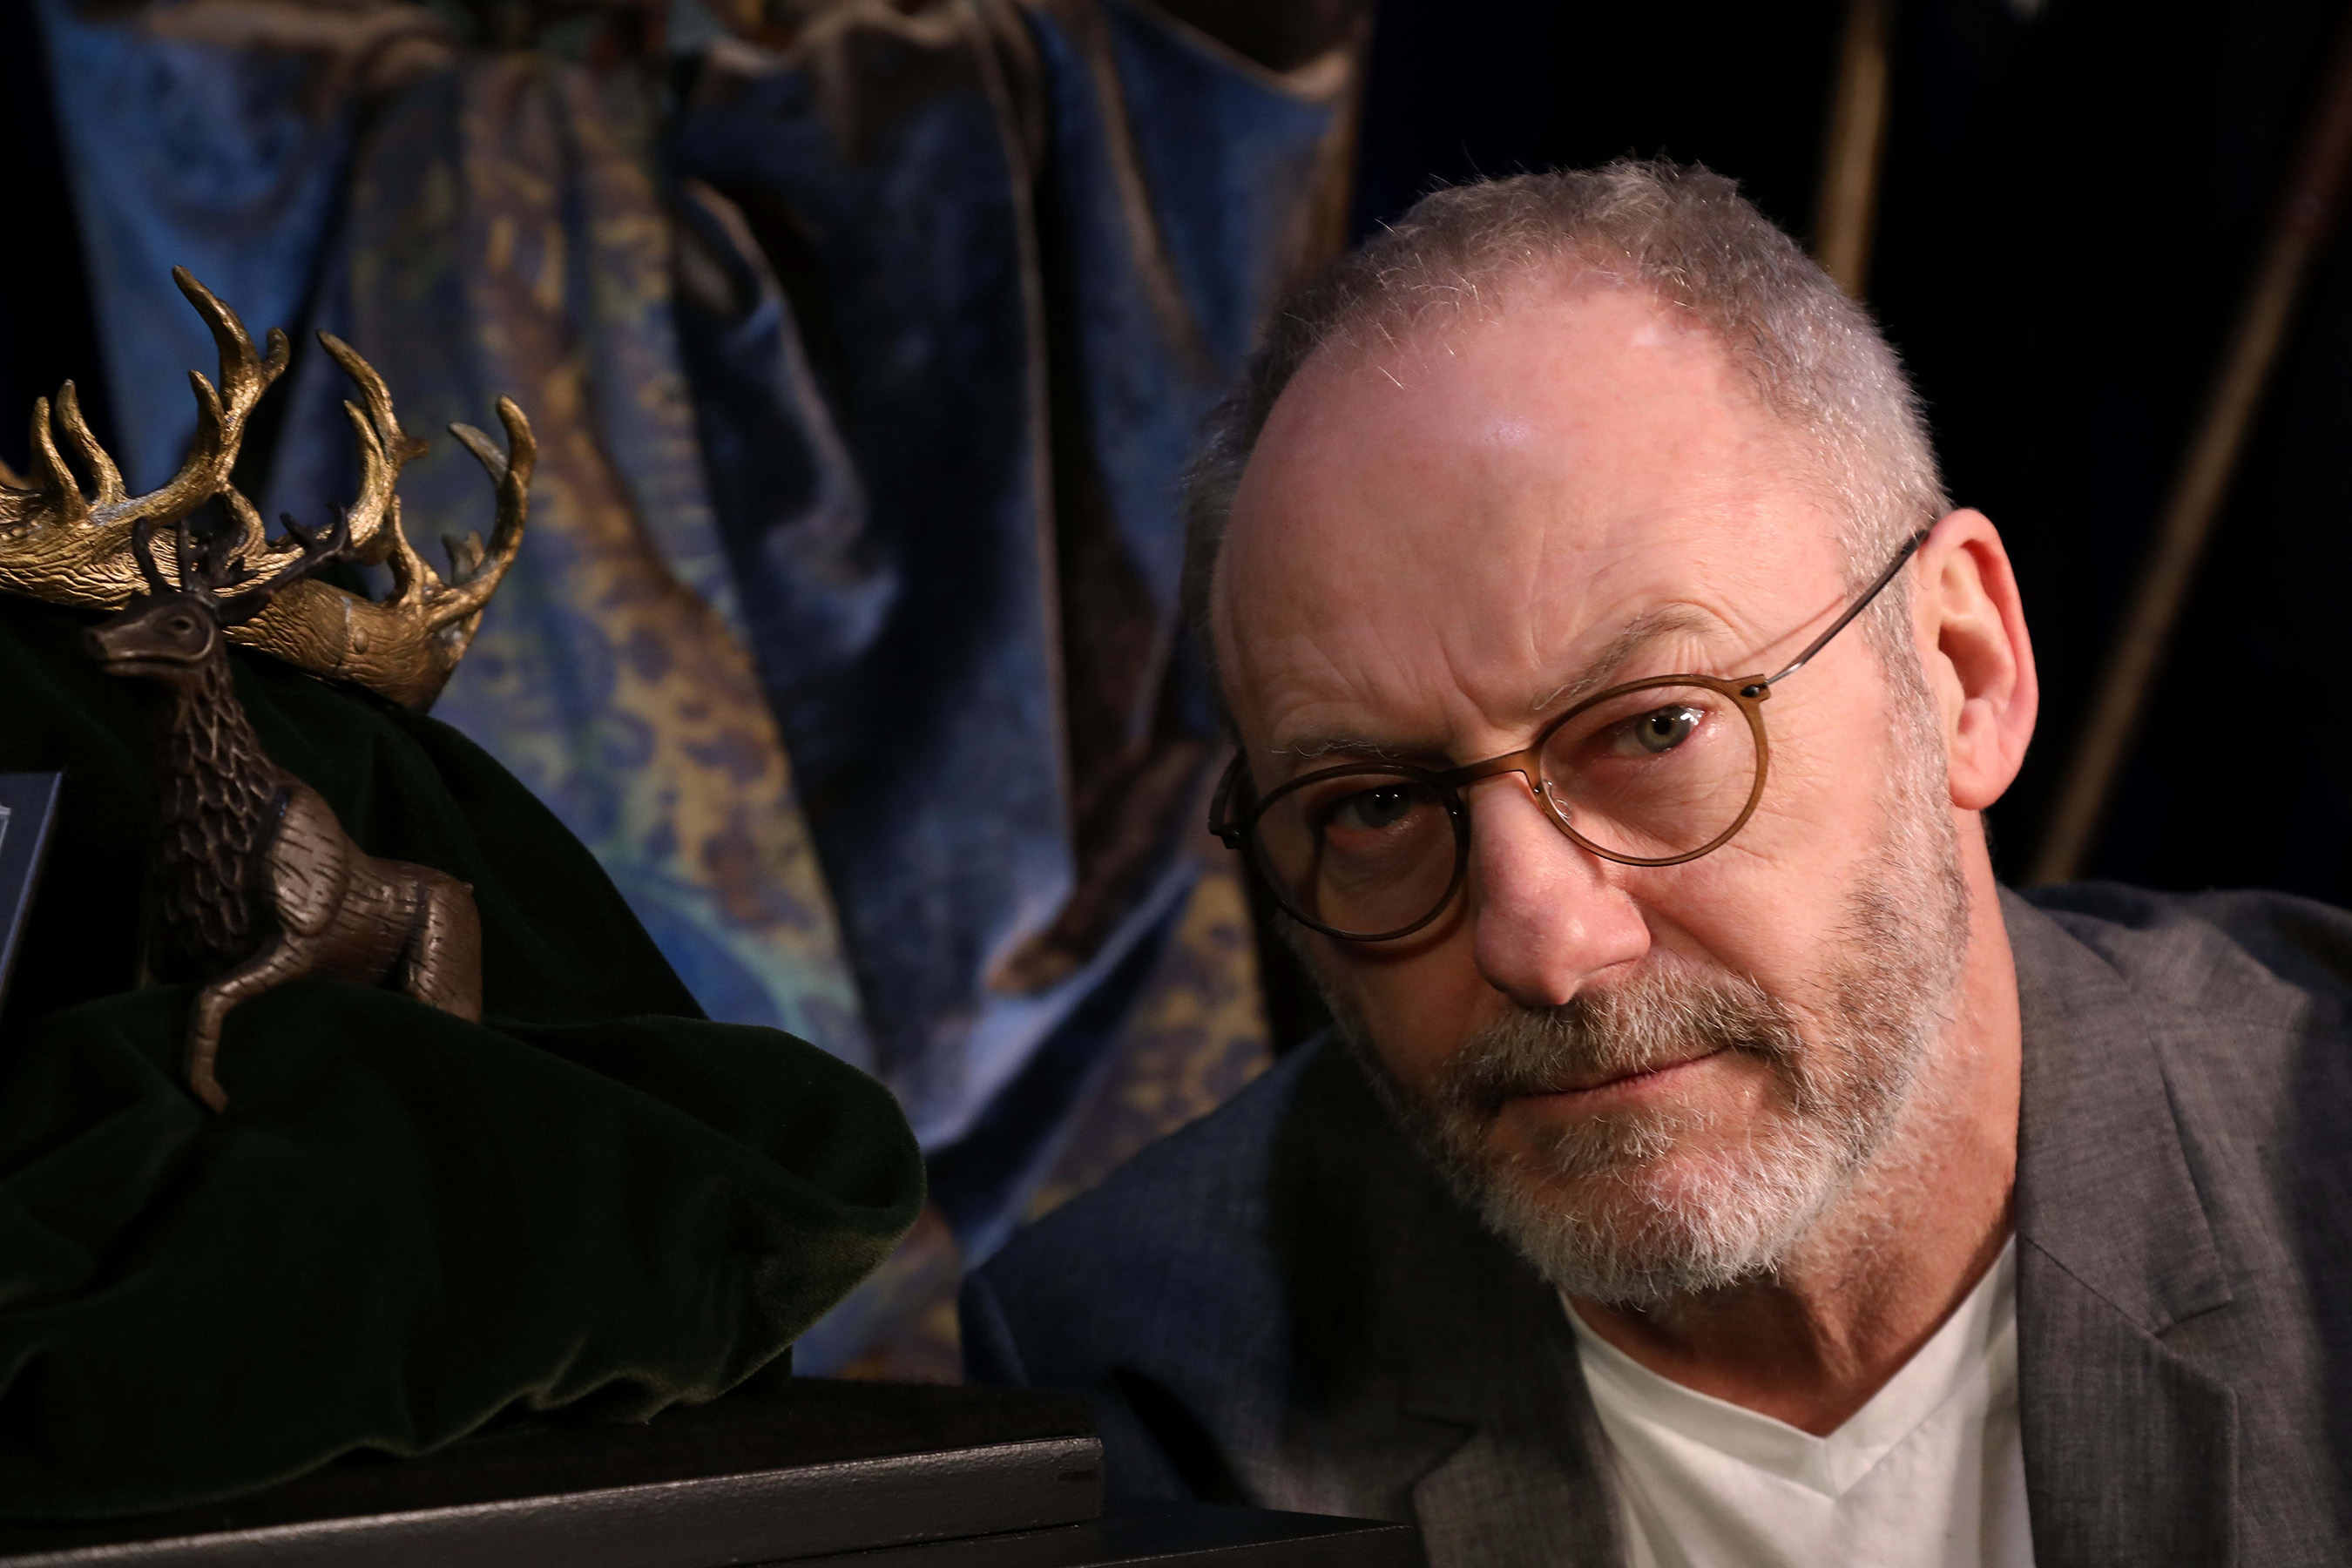 Liam Cunningham at GAME OF THRONES™: The Touring Exhibition at TEC in Belfast, Northern Ireland